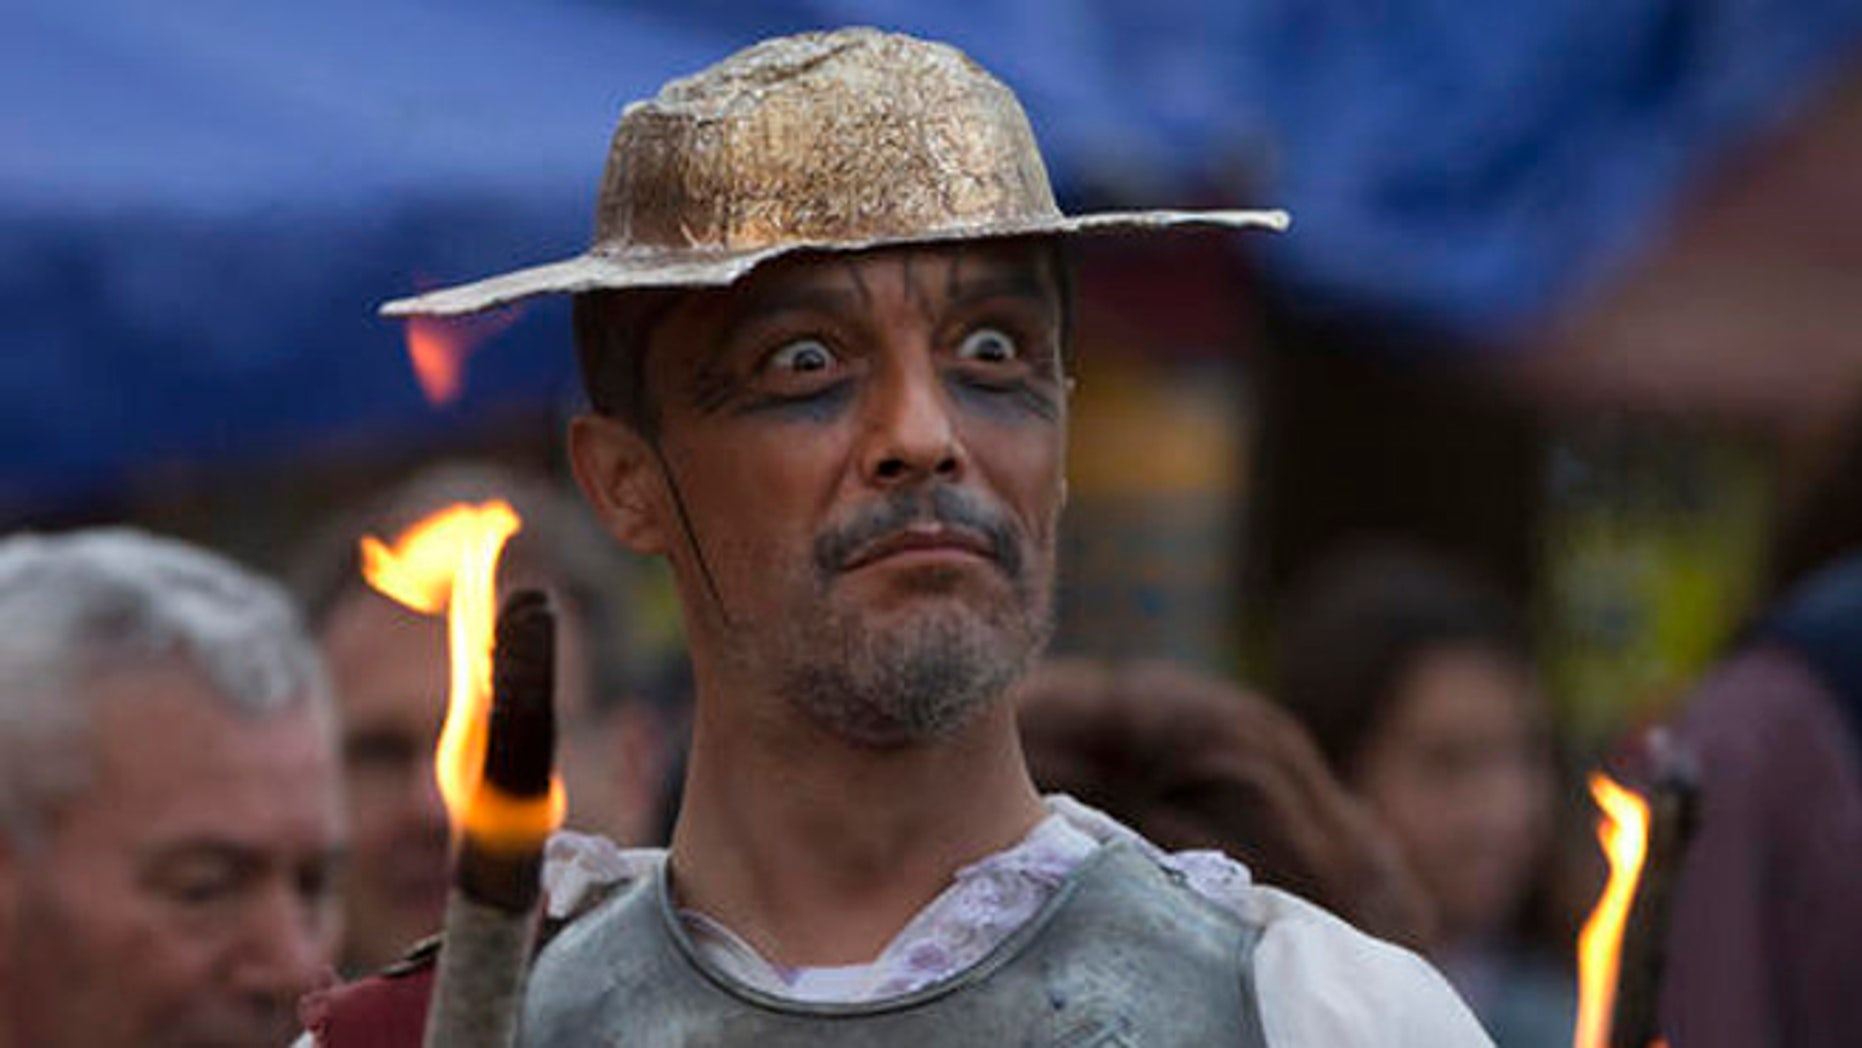 A man dressed as the character of Don Quixote holds a flaming stick during a mock funeral for Spanish writer Miguel de Cervantes, author of 'Don Quixote'  to commemorate the 400th anniversary of his death, in his birthplace of Alcala de Henares, Spain, Friday April 22, 2016. (AP Photo/Paul White)